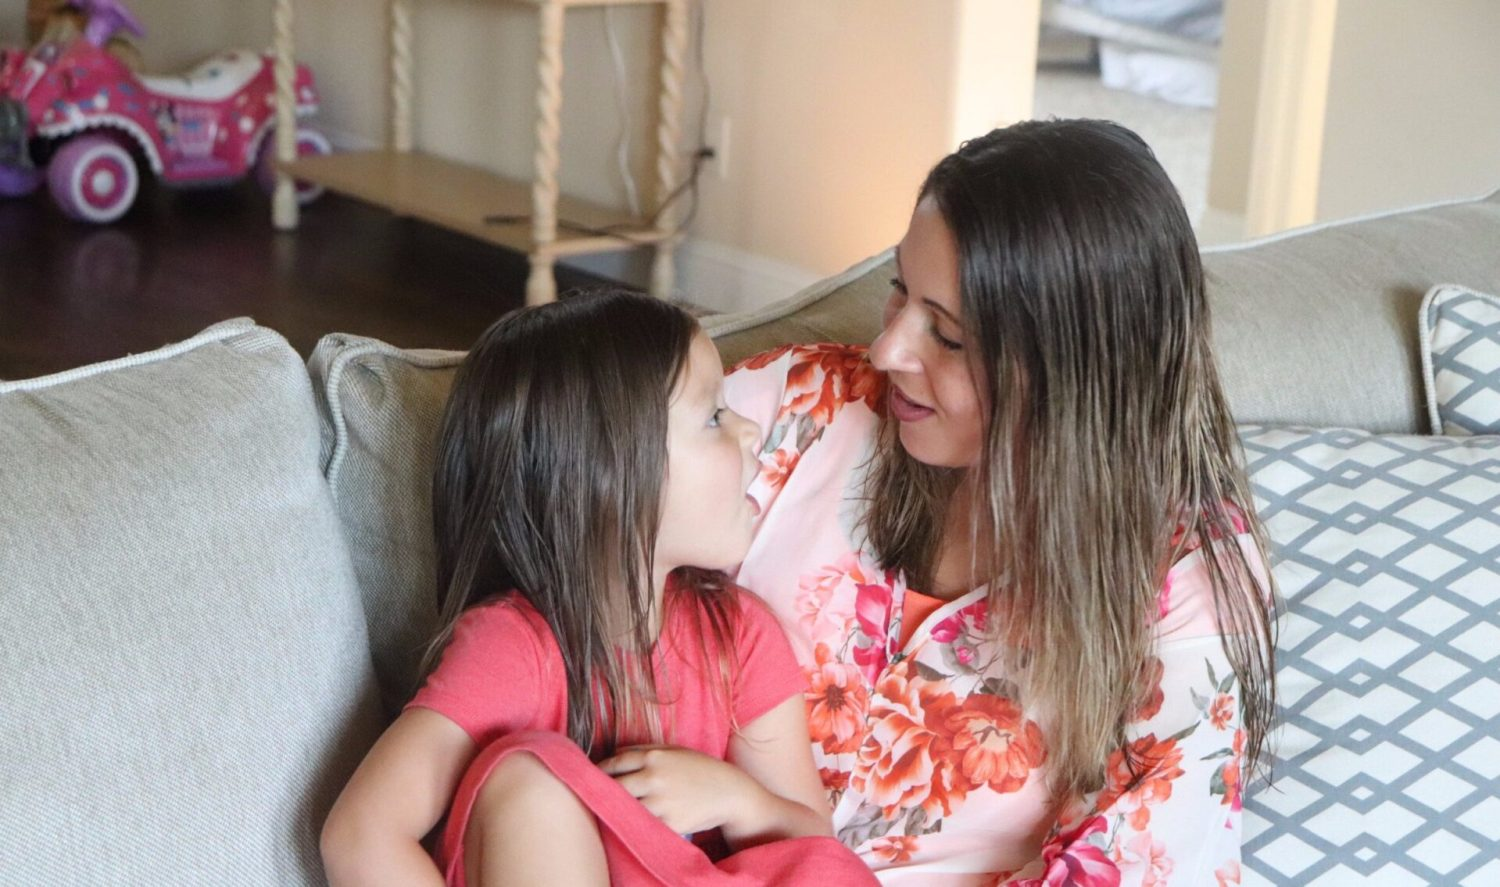 Toddlers develop speech at different times. These 5 simple toddler speech delay exercises help give your child an extra boost to encourage speech development.